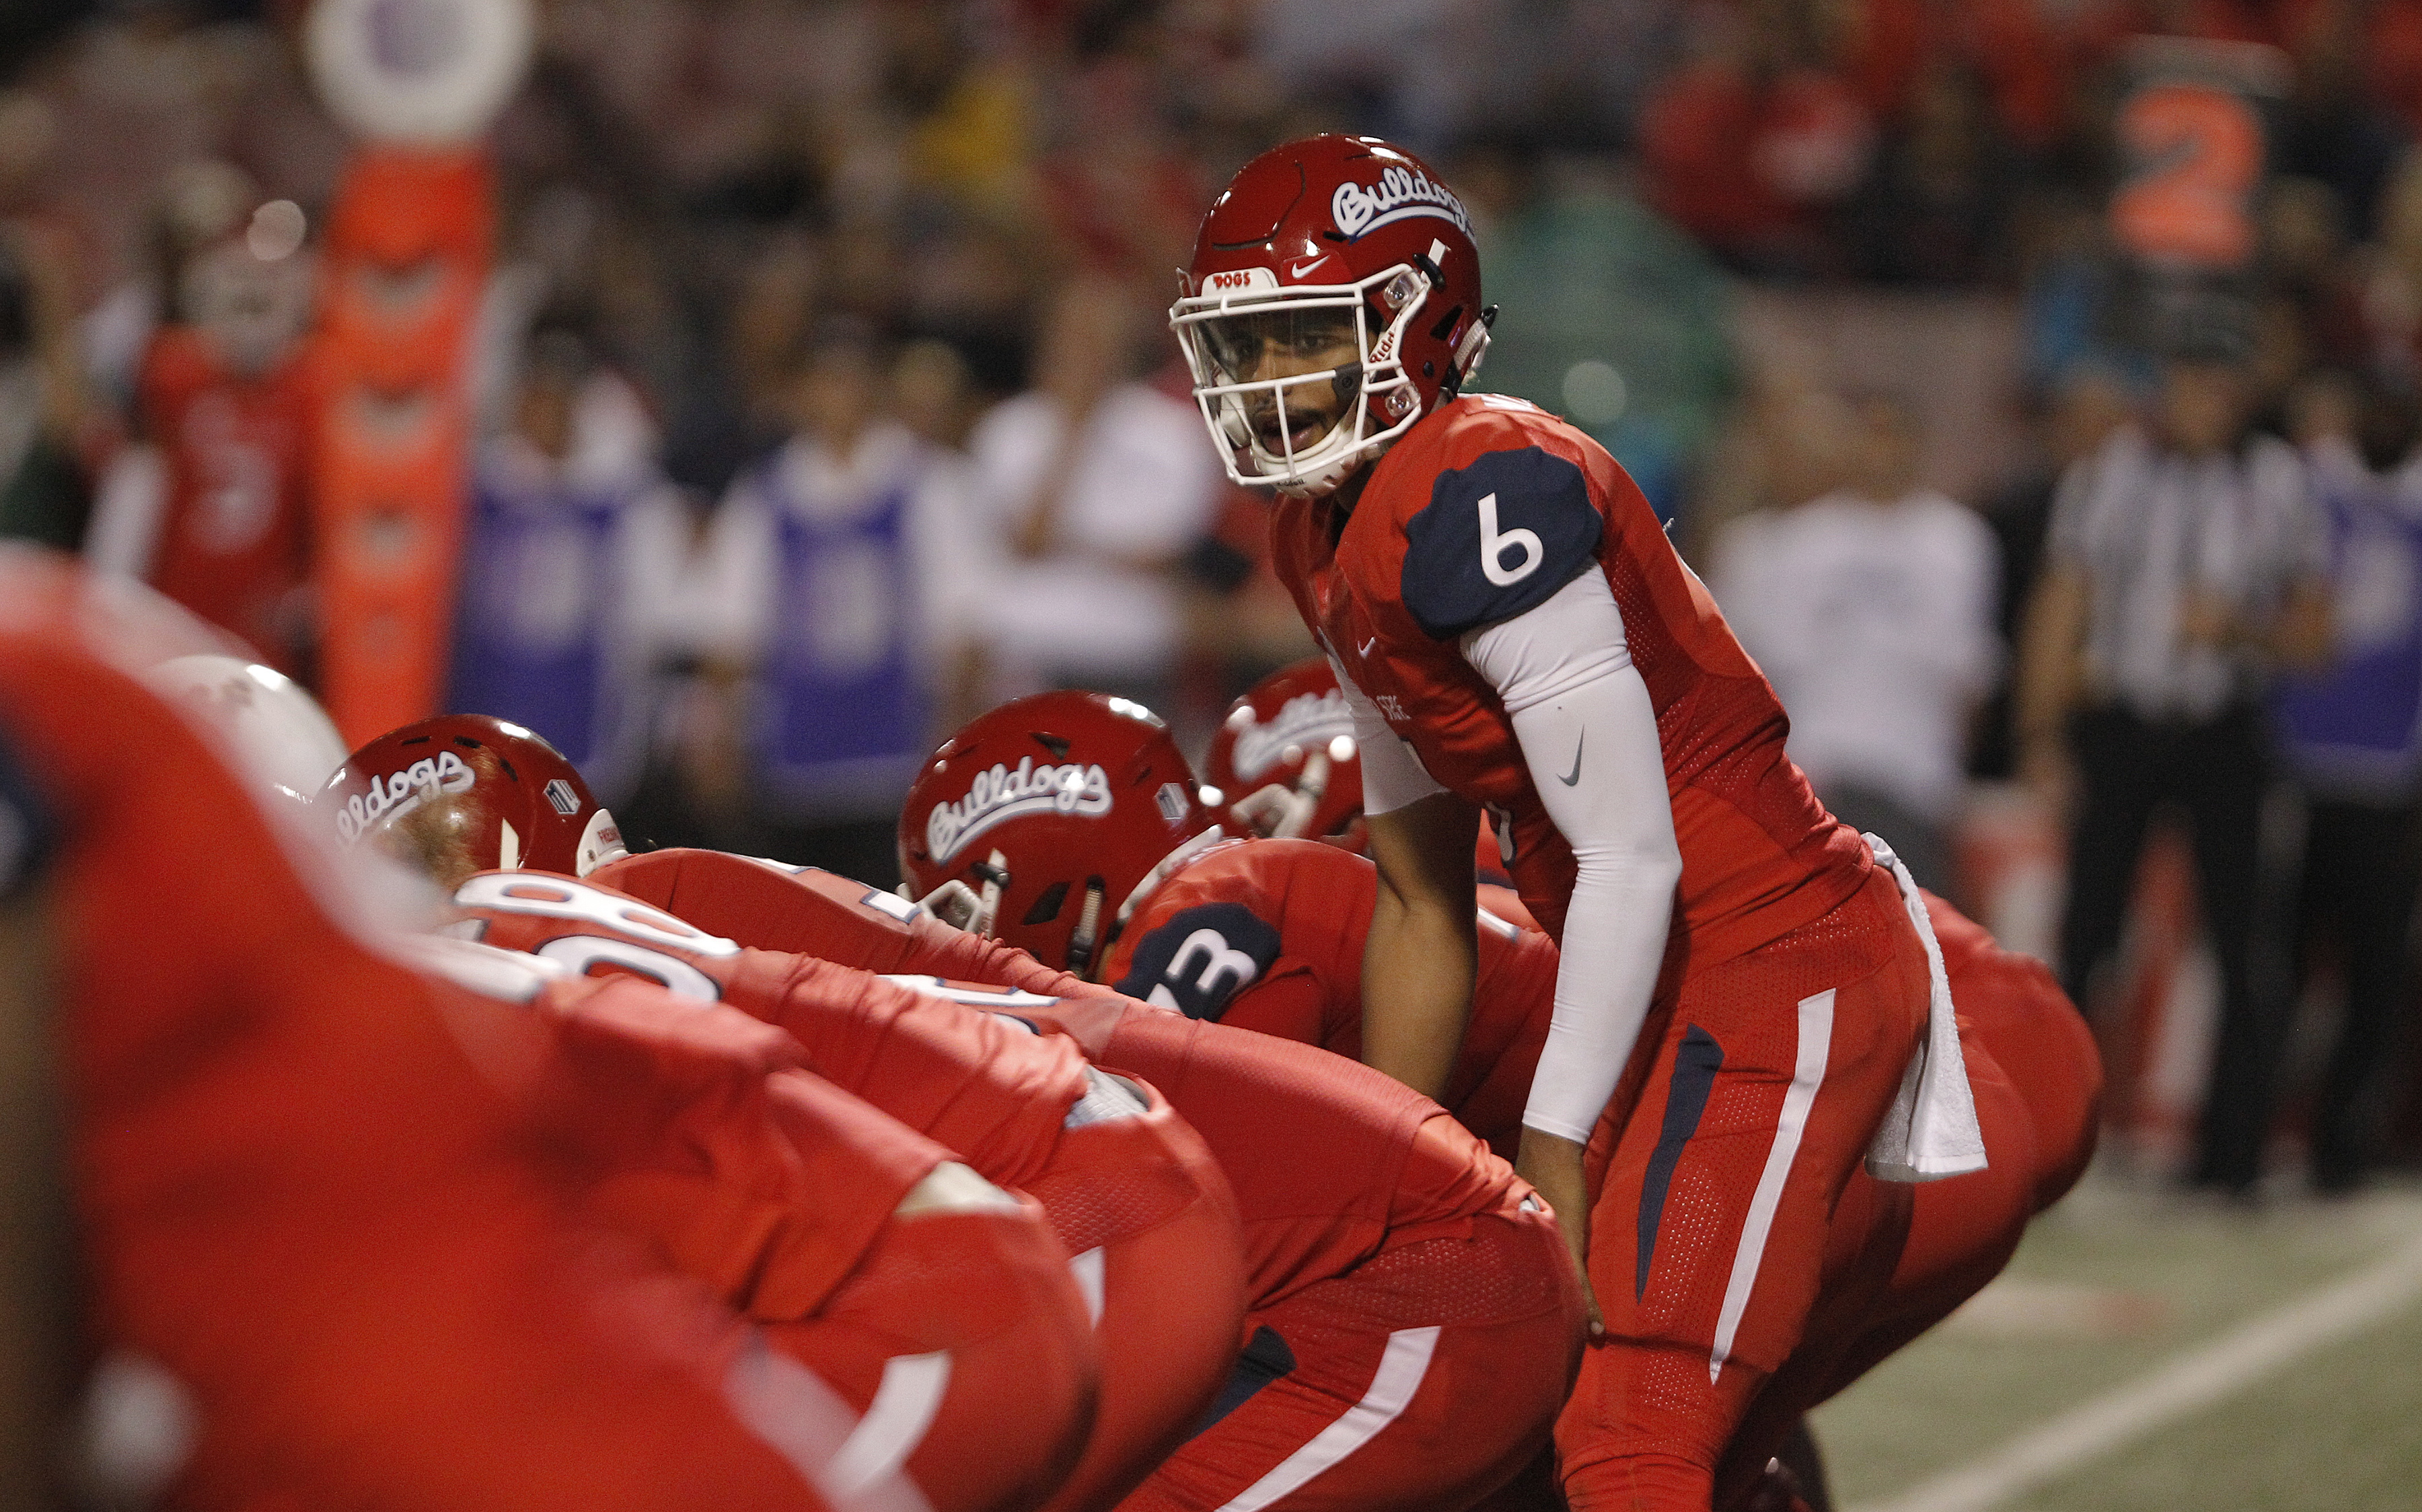 Fresno State returns to Coaches Poll Top 25, finishes just outside AP Poll